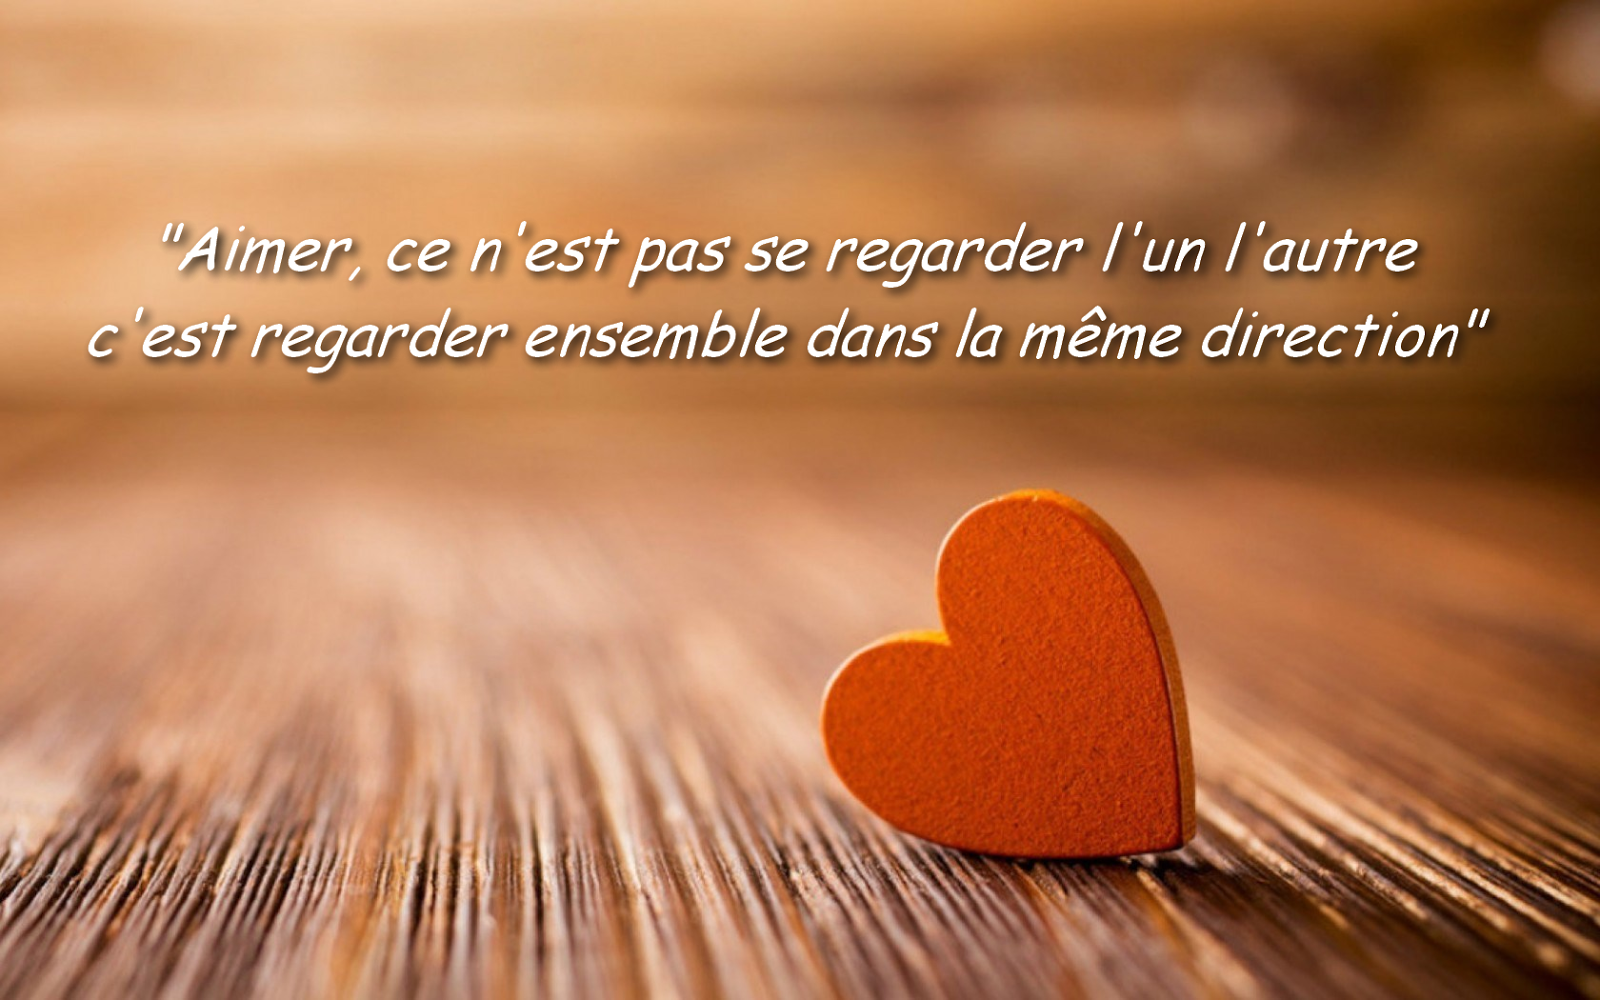 citation d'amour